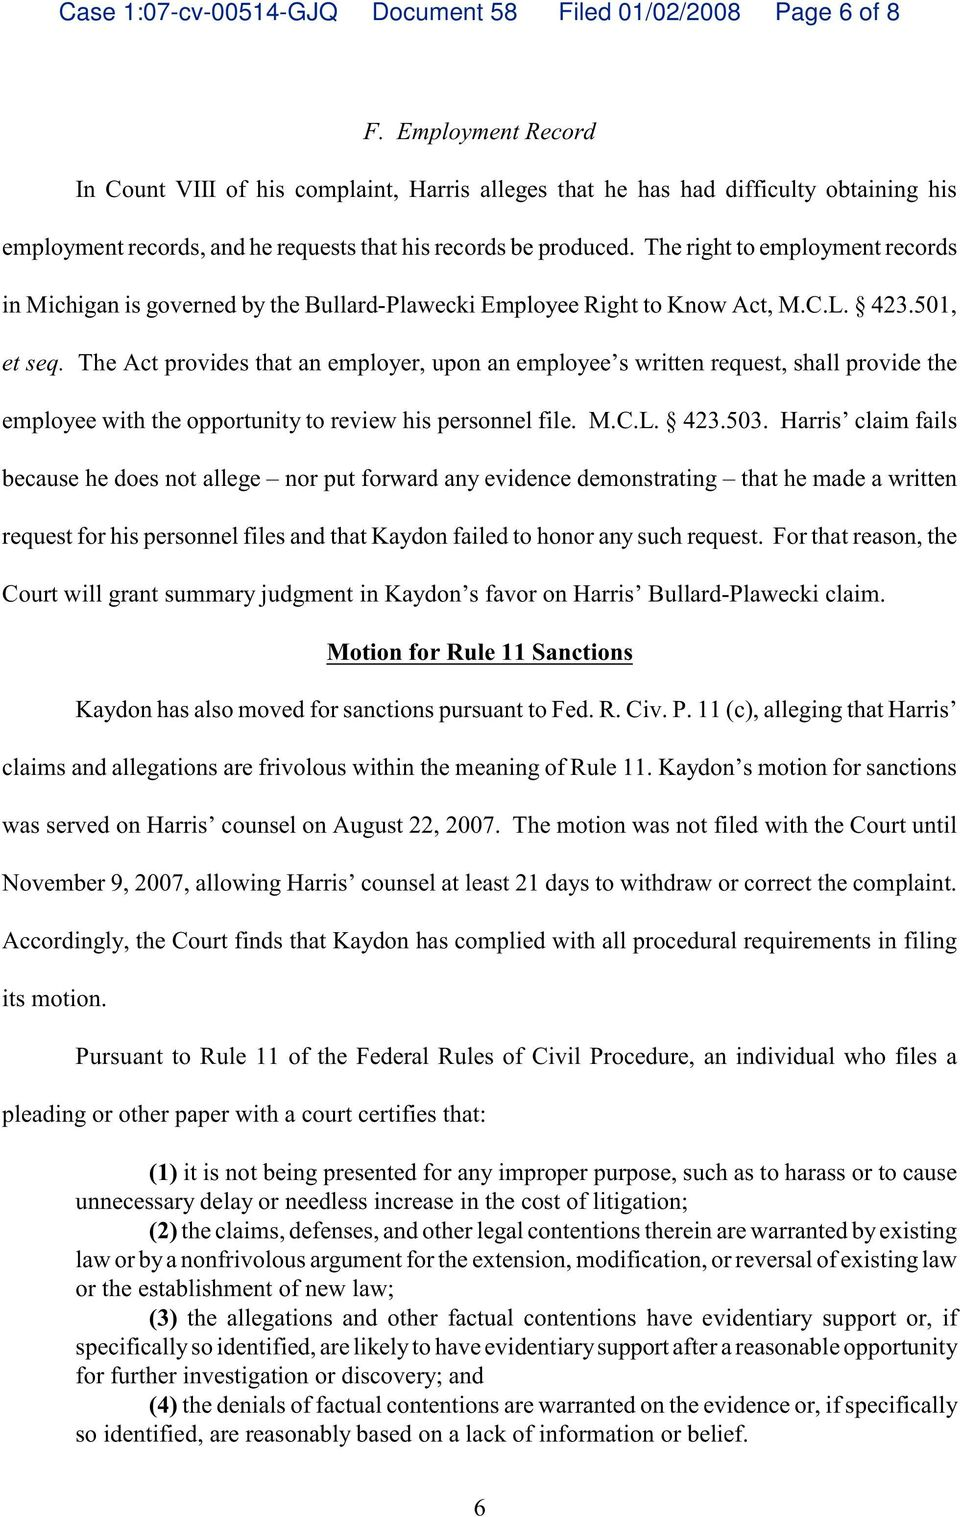 The right to employment records in Michigan is governed by the Bullard-Plawecki Employee Right to Know Act, M.C.L. 423.501, et seq.